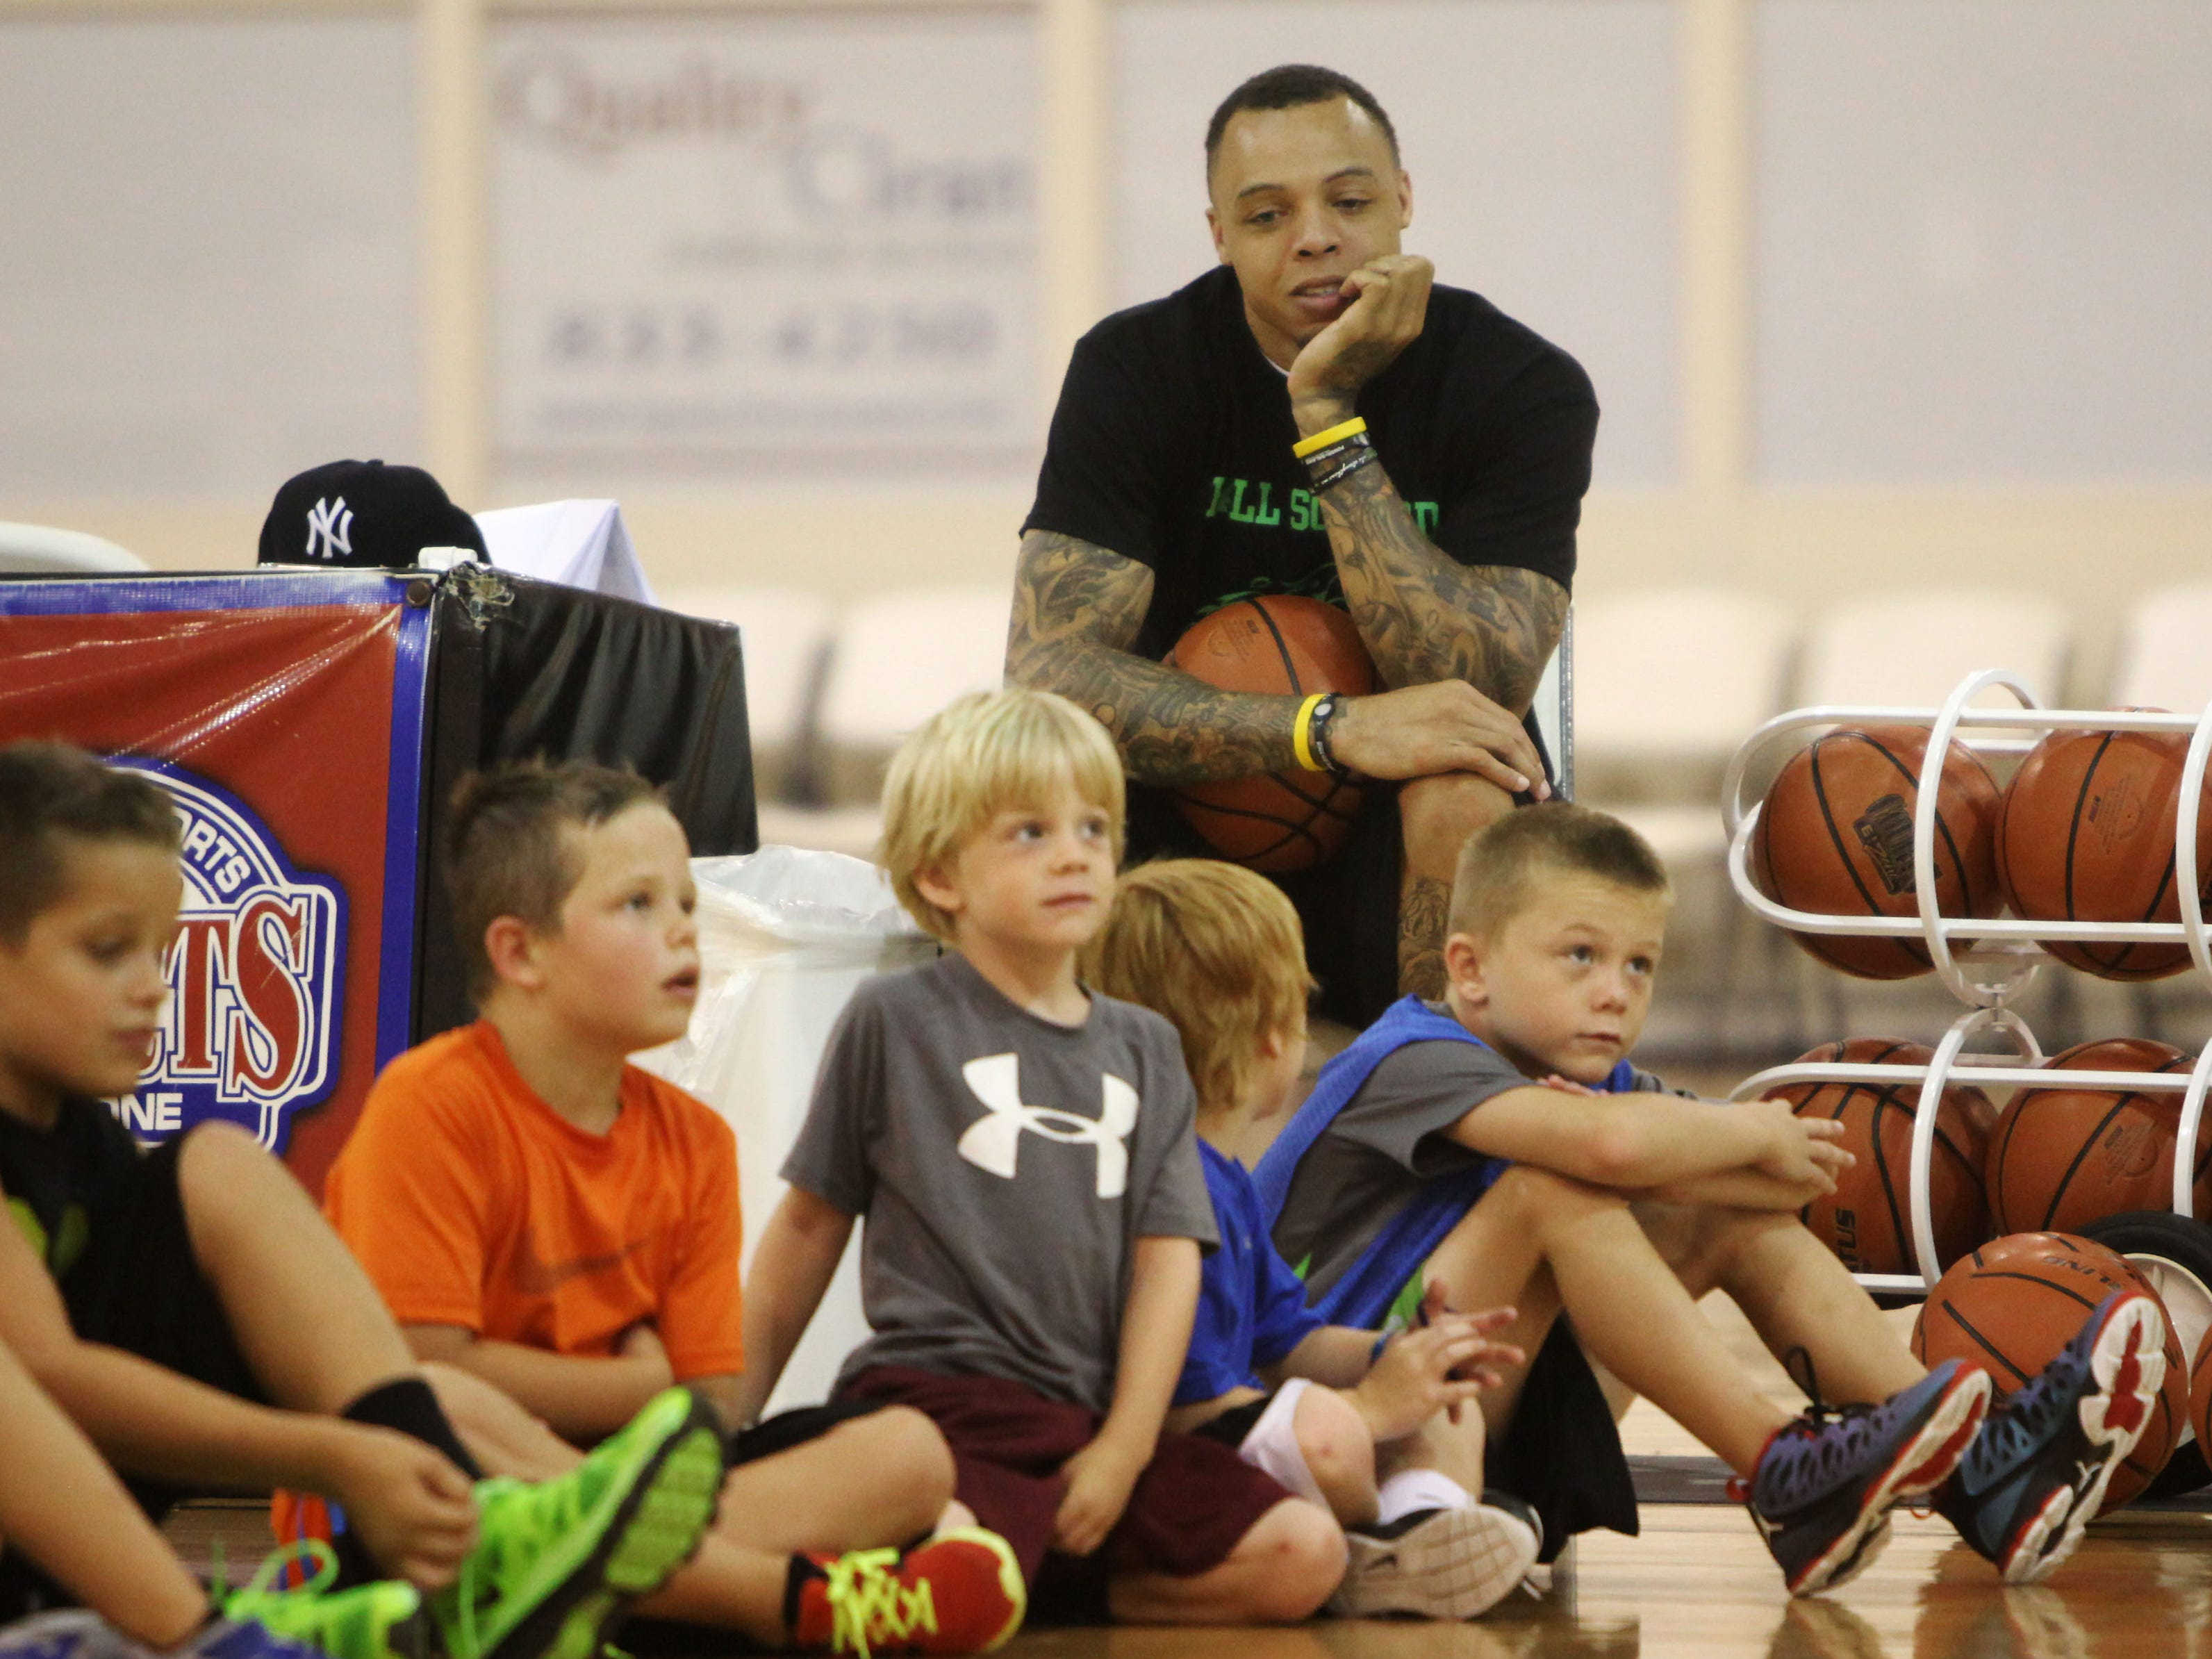 Former Bear Deven Mitchell gave a kids camp at The Courts on Monday, July 1, 2013.